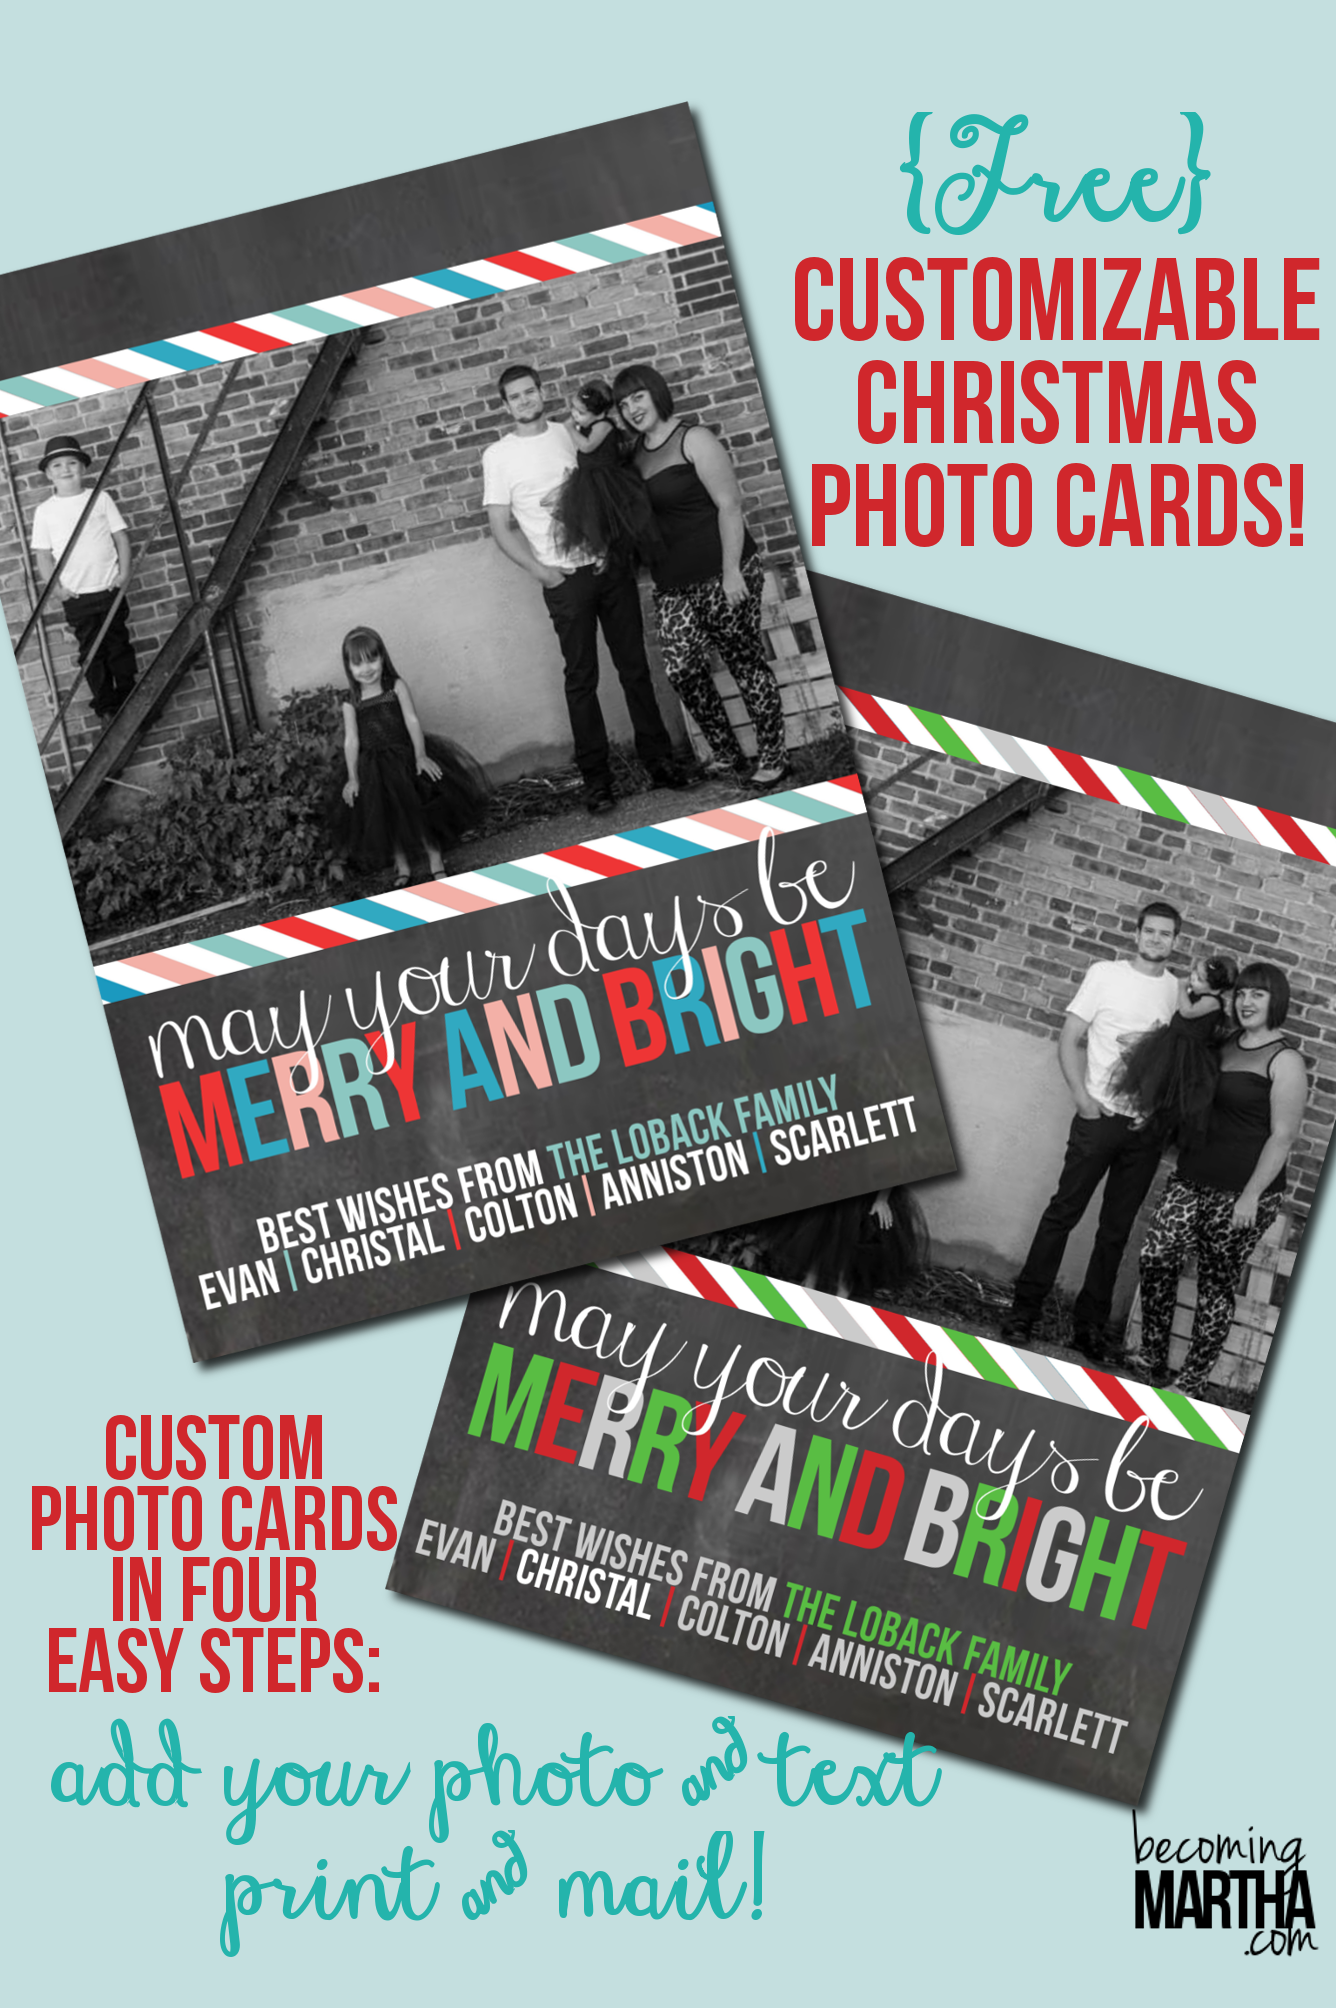 Free Printable Christmas Cards {Customize with Your Own Photo!}